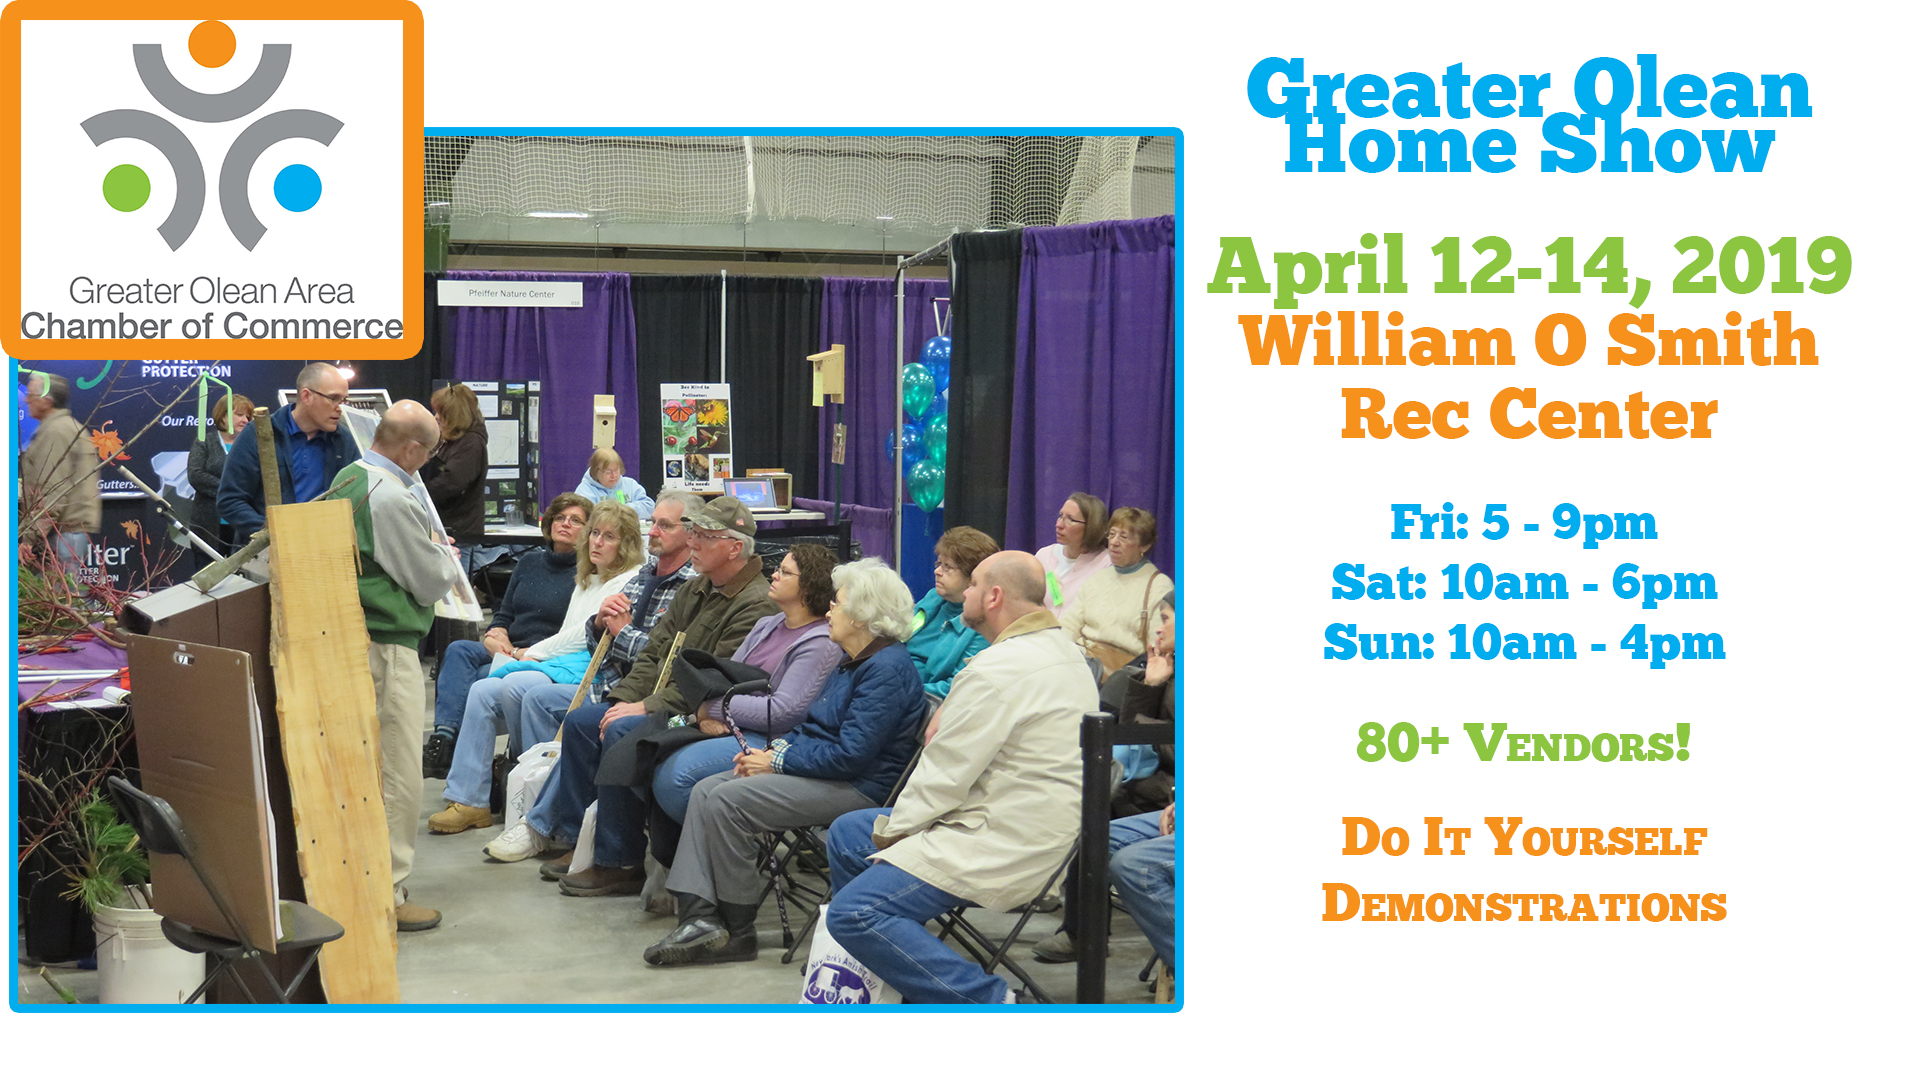 2019 Greater Olean Area Home Show